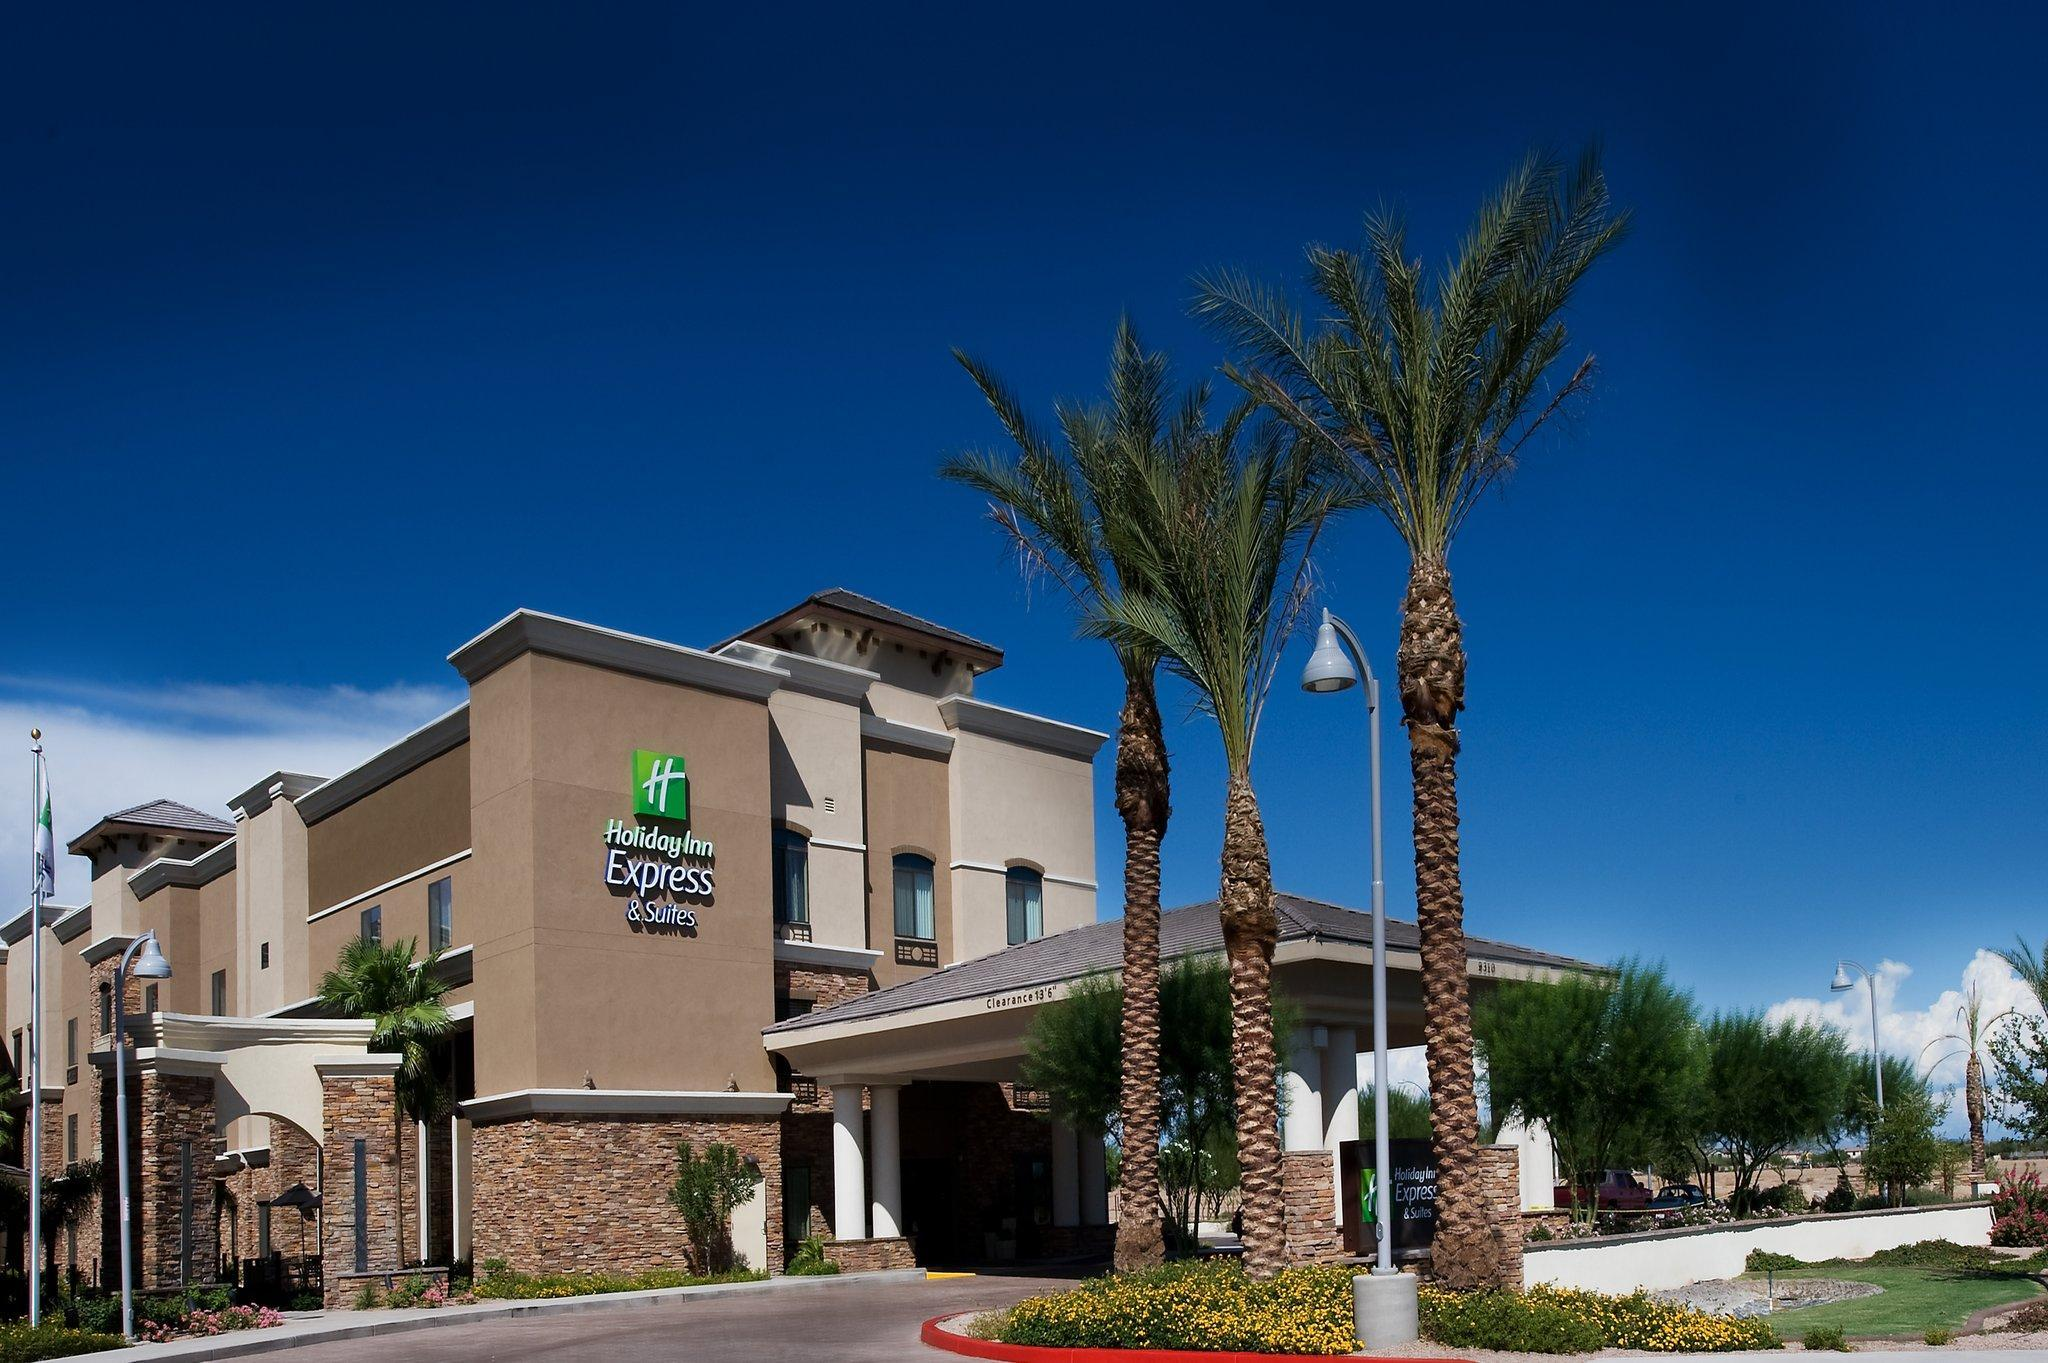 Holiday Inn Express Hotel And Suites Phoenix Glendale